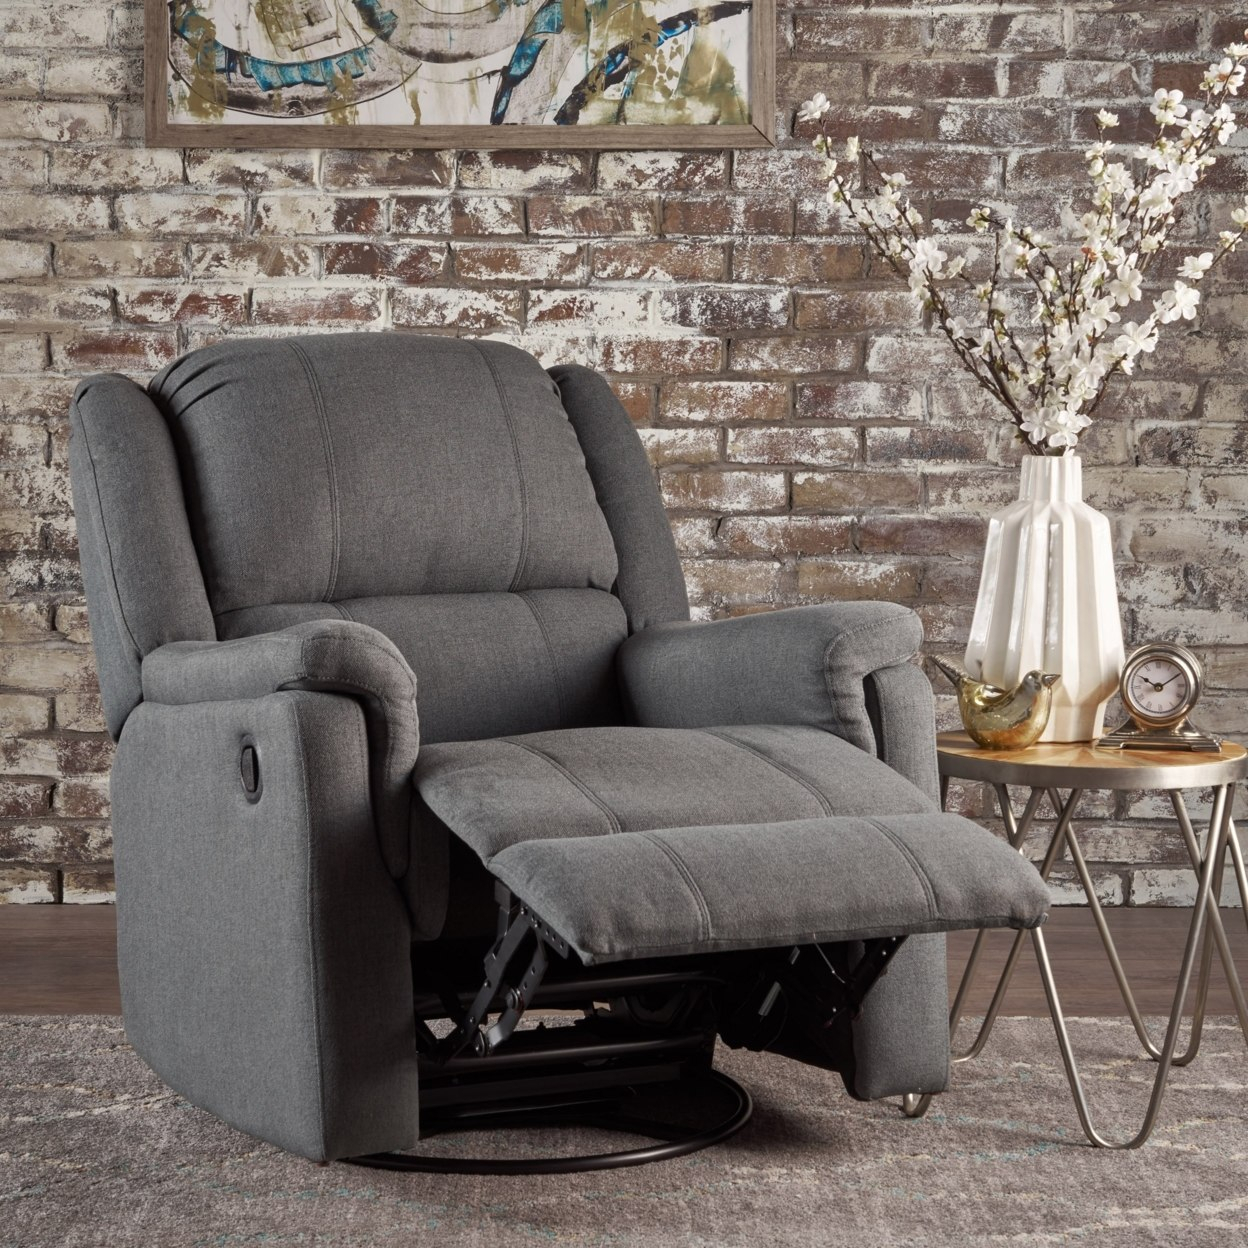 Jemma Tufted Fabric Swivel Gliding Recliner Chair In Living Room Inside Decker Ii Fabric Swivel Glider Recliners (Image 12 of 20)